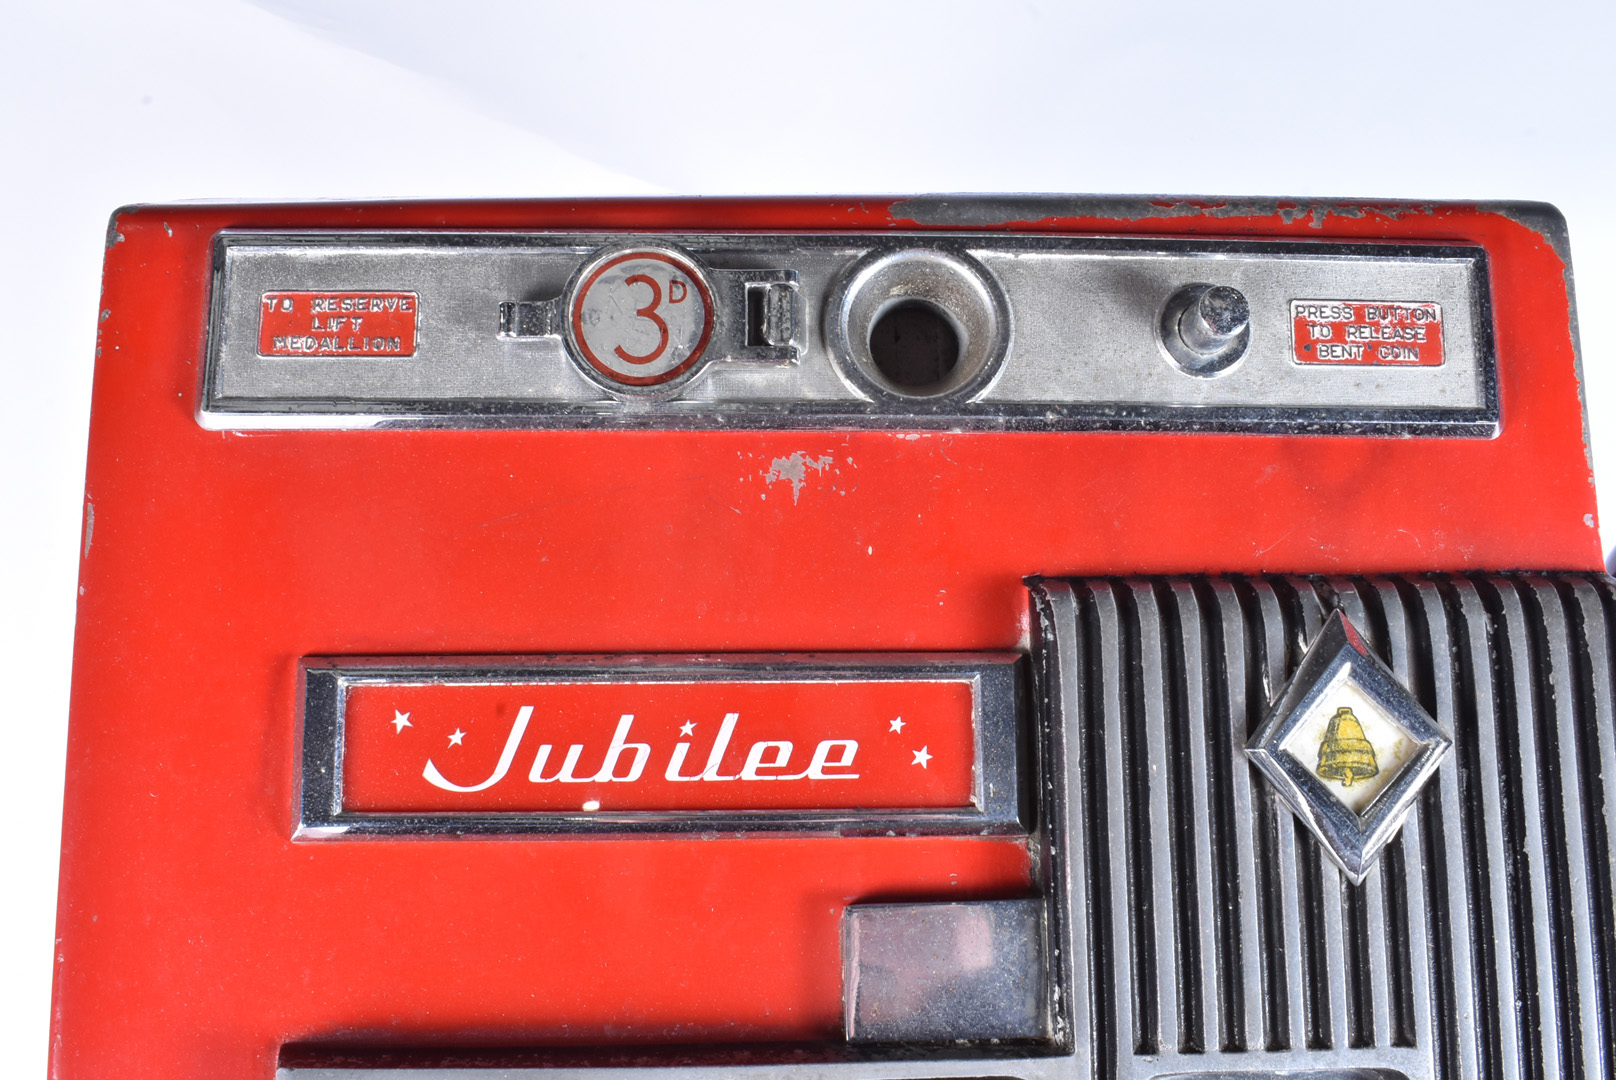 A Jubilee One Arm Bandit, in red, the 3d machine having chromed design to one side with fruit - Image 2 of 5